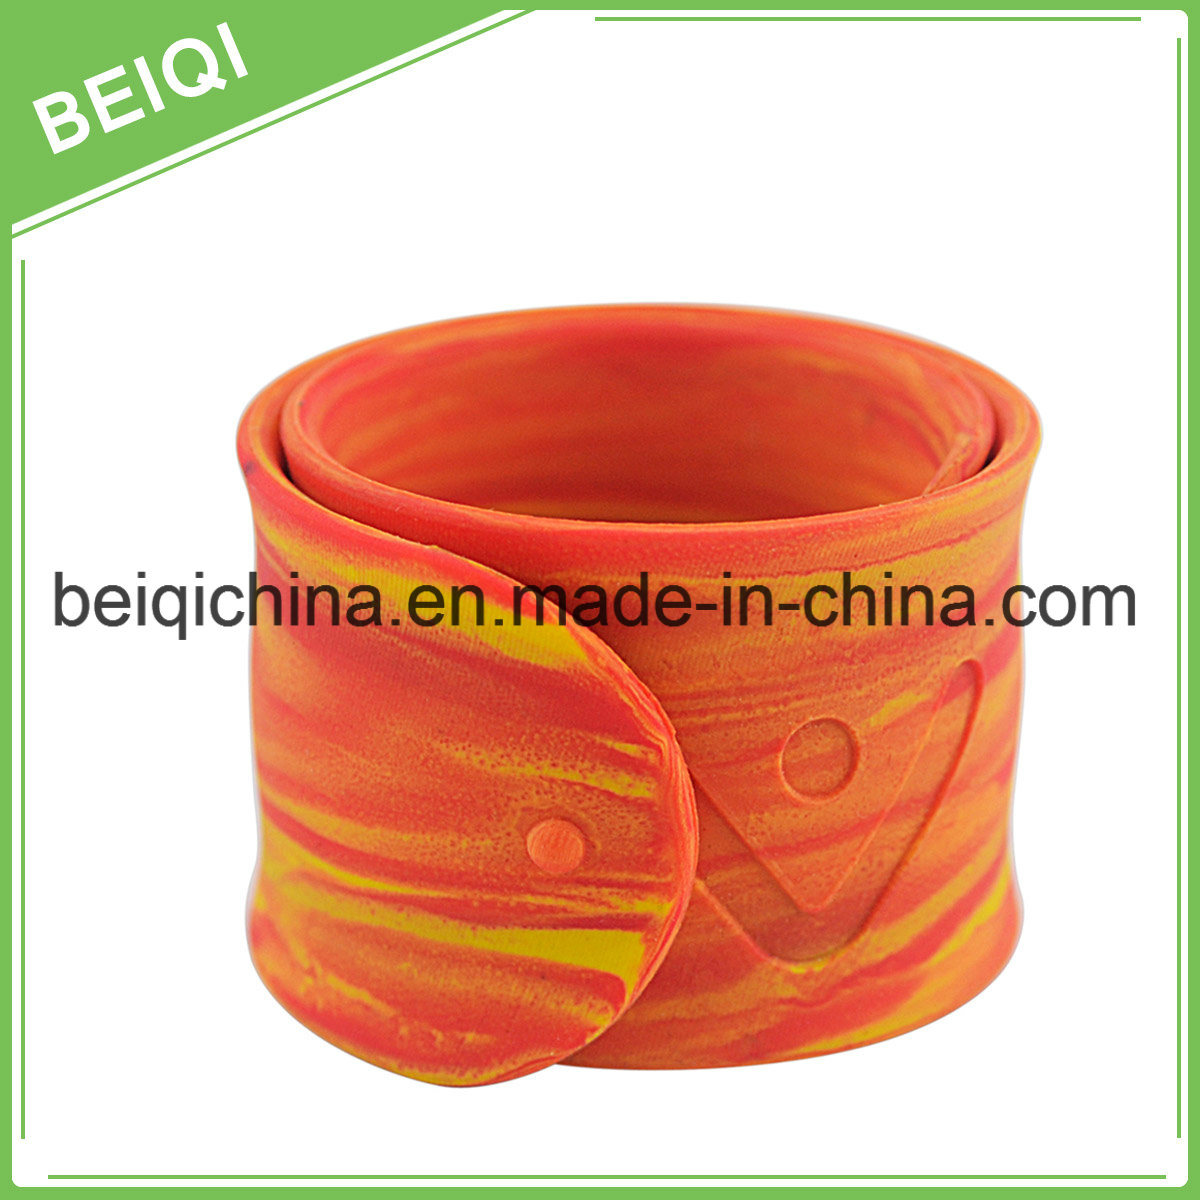 Magnetic Adjustable Silicone Bracelet with Colorfilled